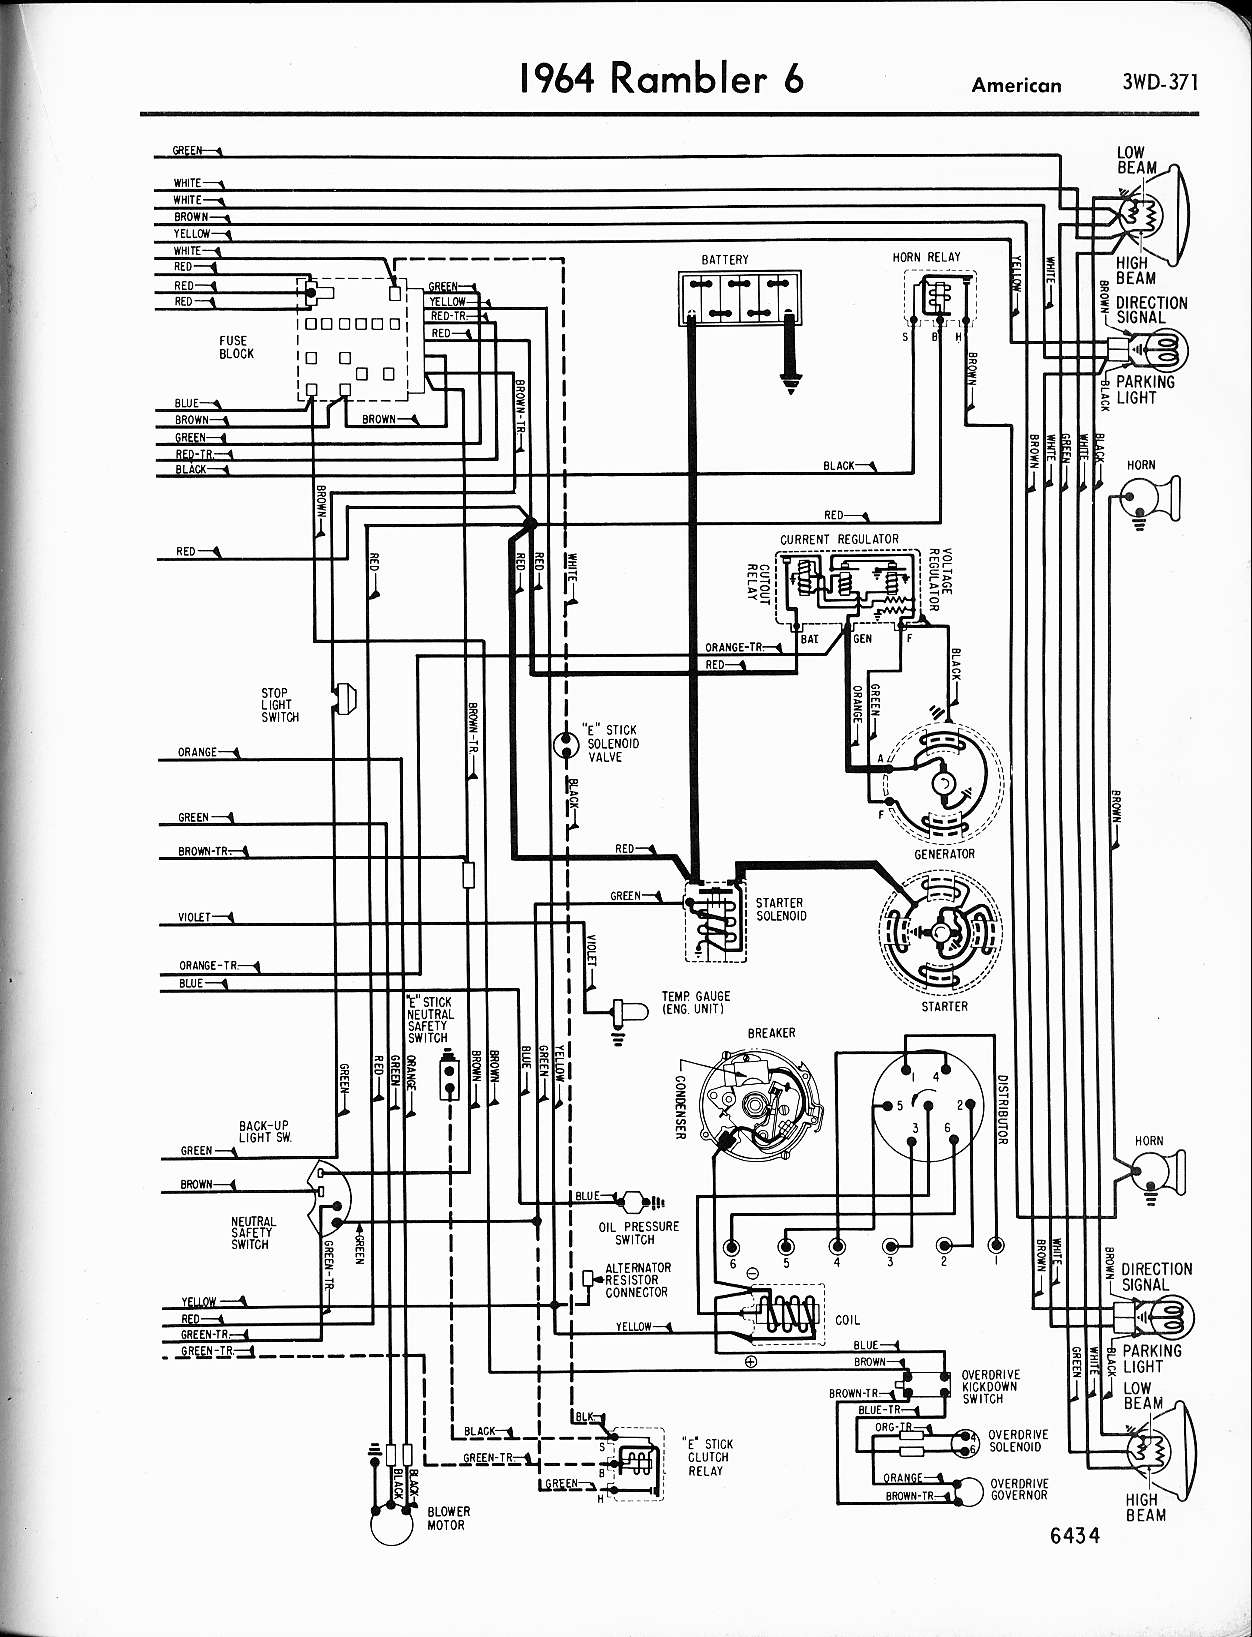 1967 Rambler American Wiring Diagram Ford Diagrams The Old Car Manual Project Rh Oldcarmanualproject Com Chevelle